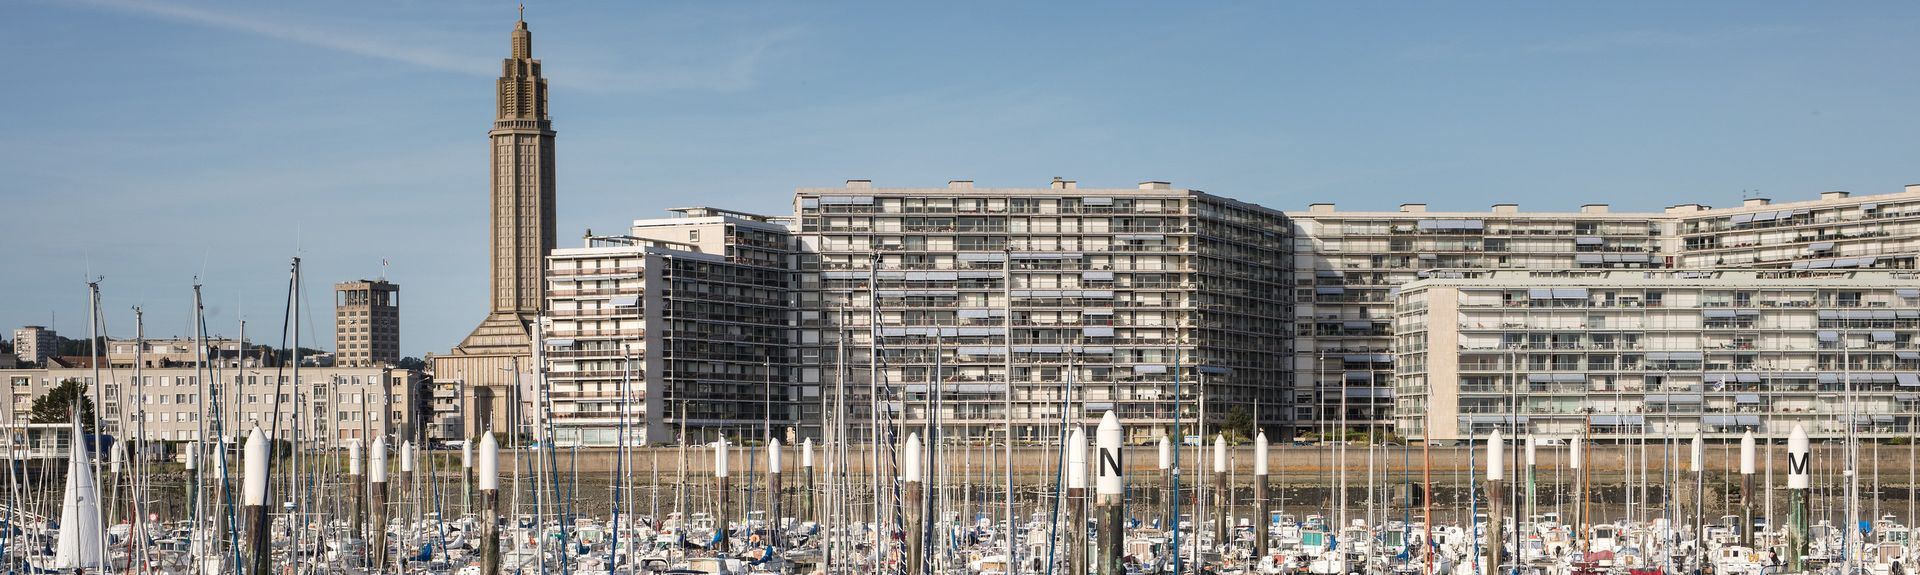 Downtown, Le Havre, France